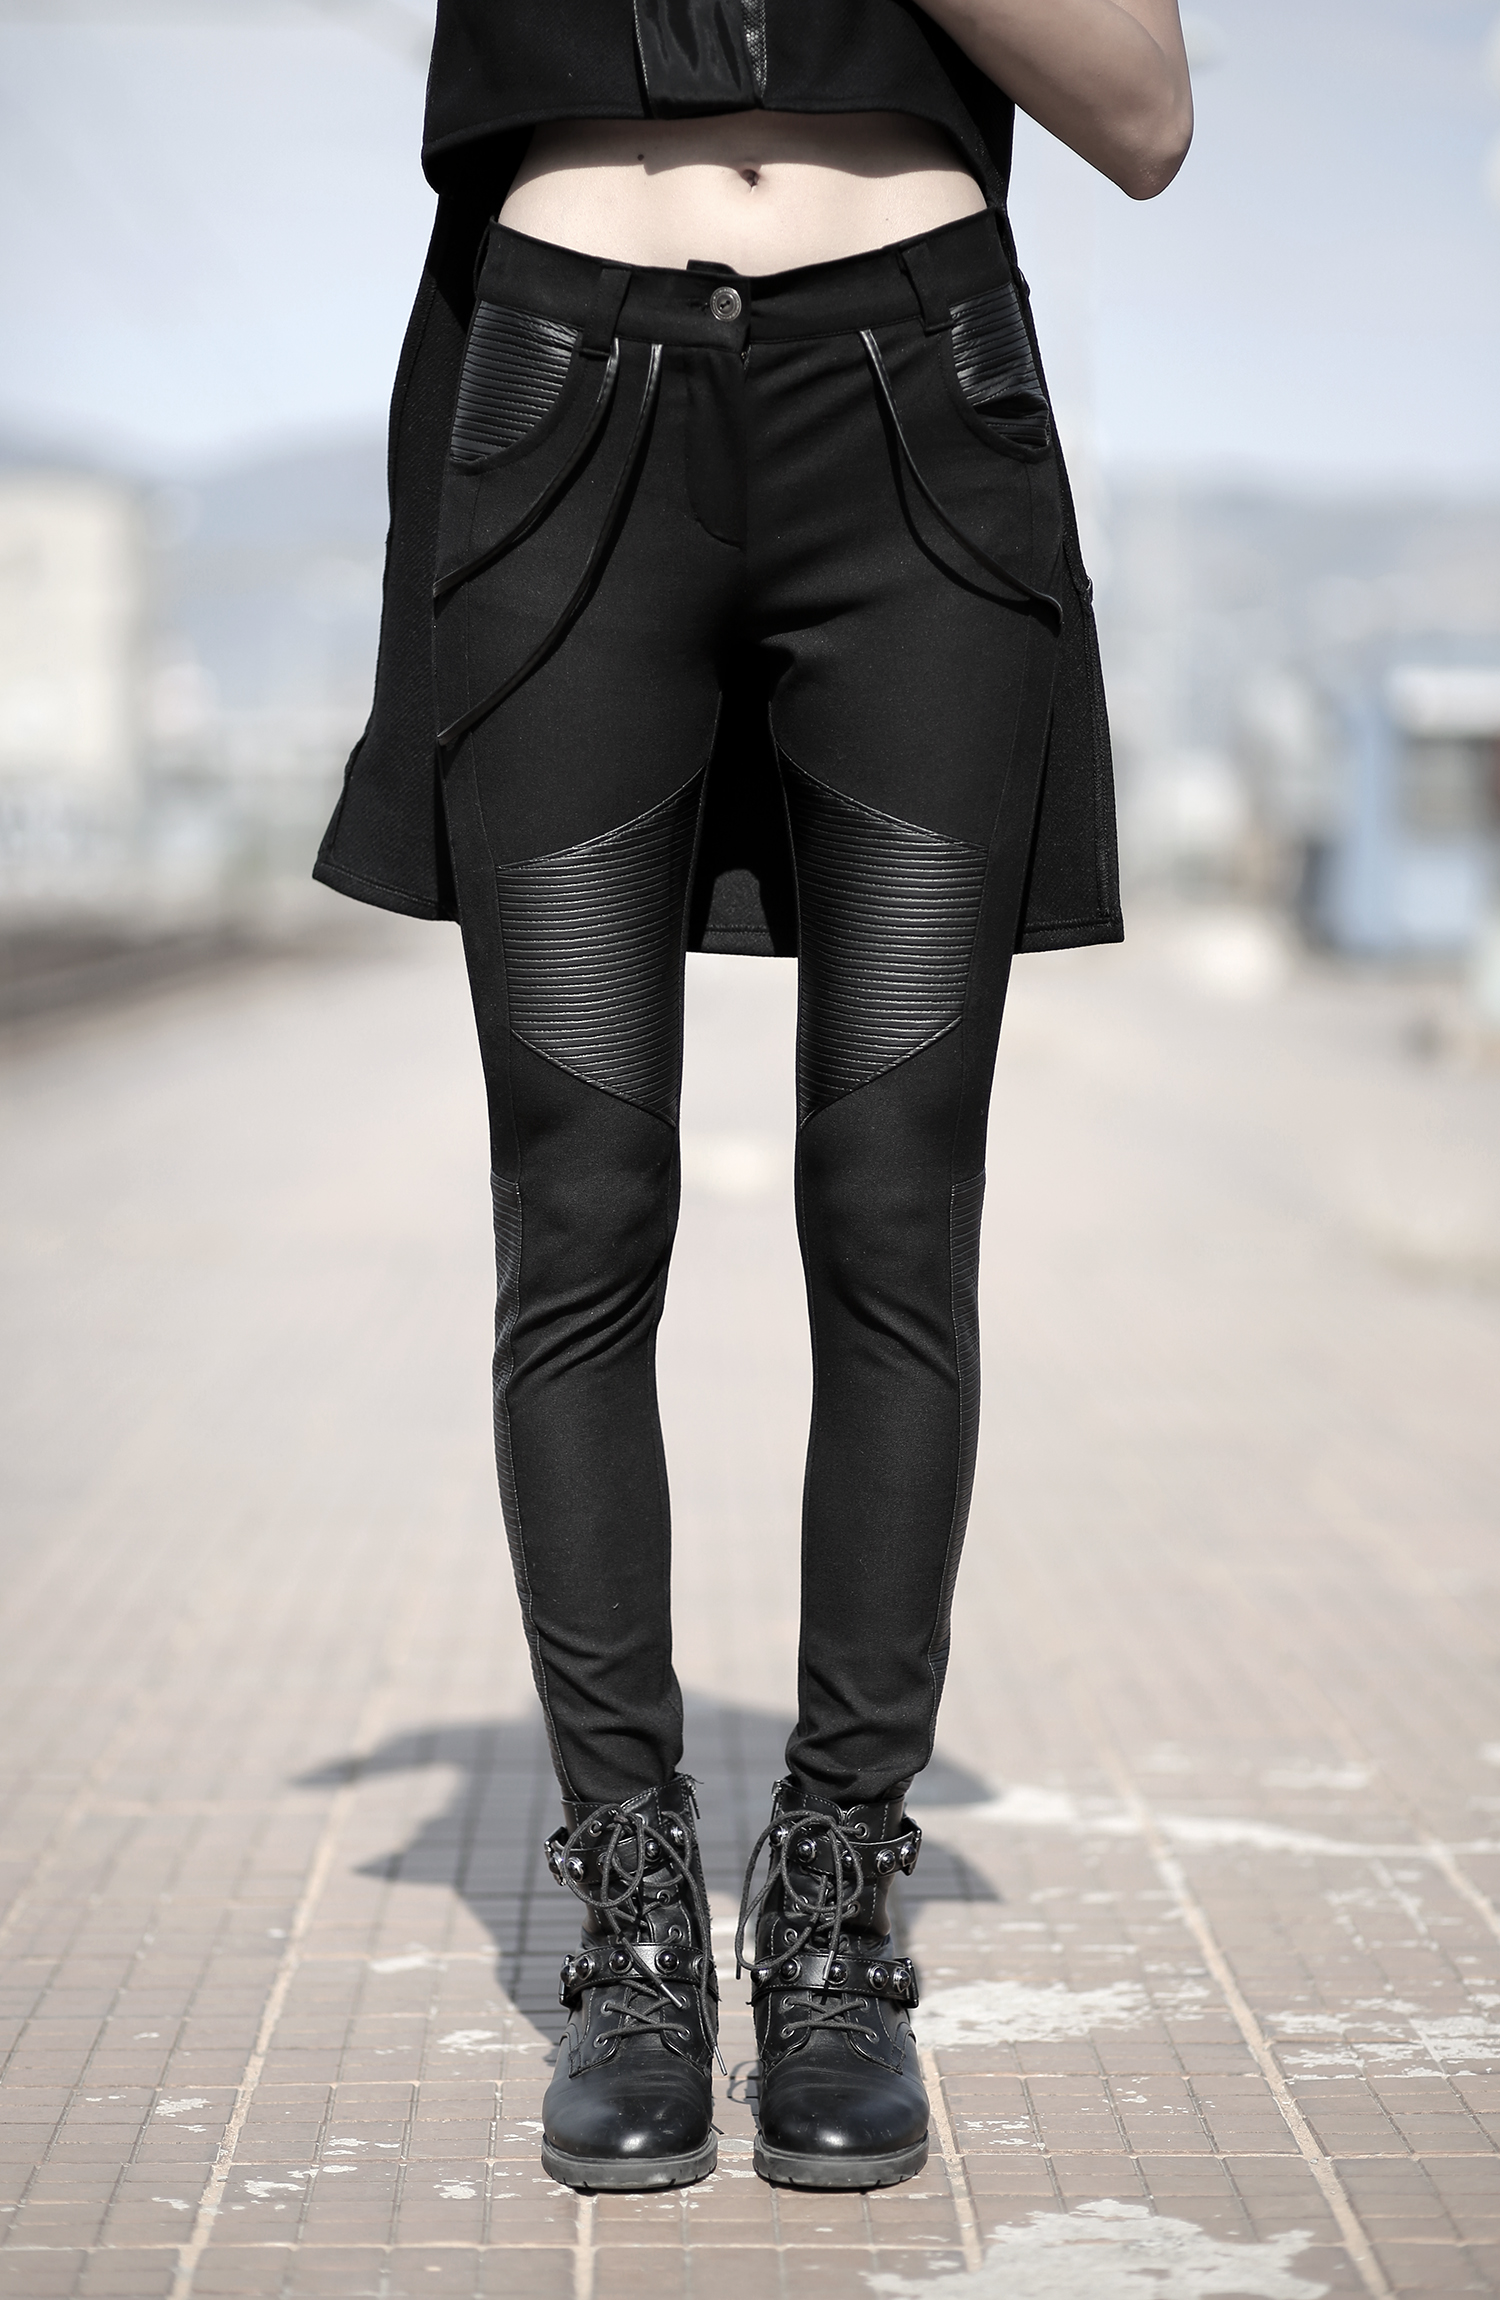 Black jeans designed with fake leather. Tight fit. Unique autumn/winter designer pants. Cyberpunk.